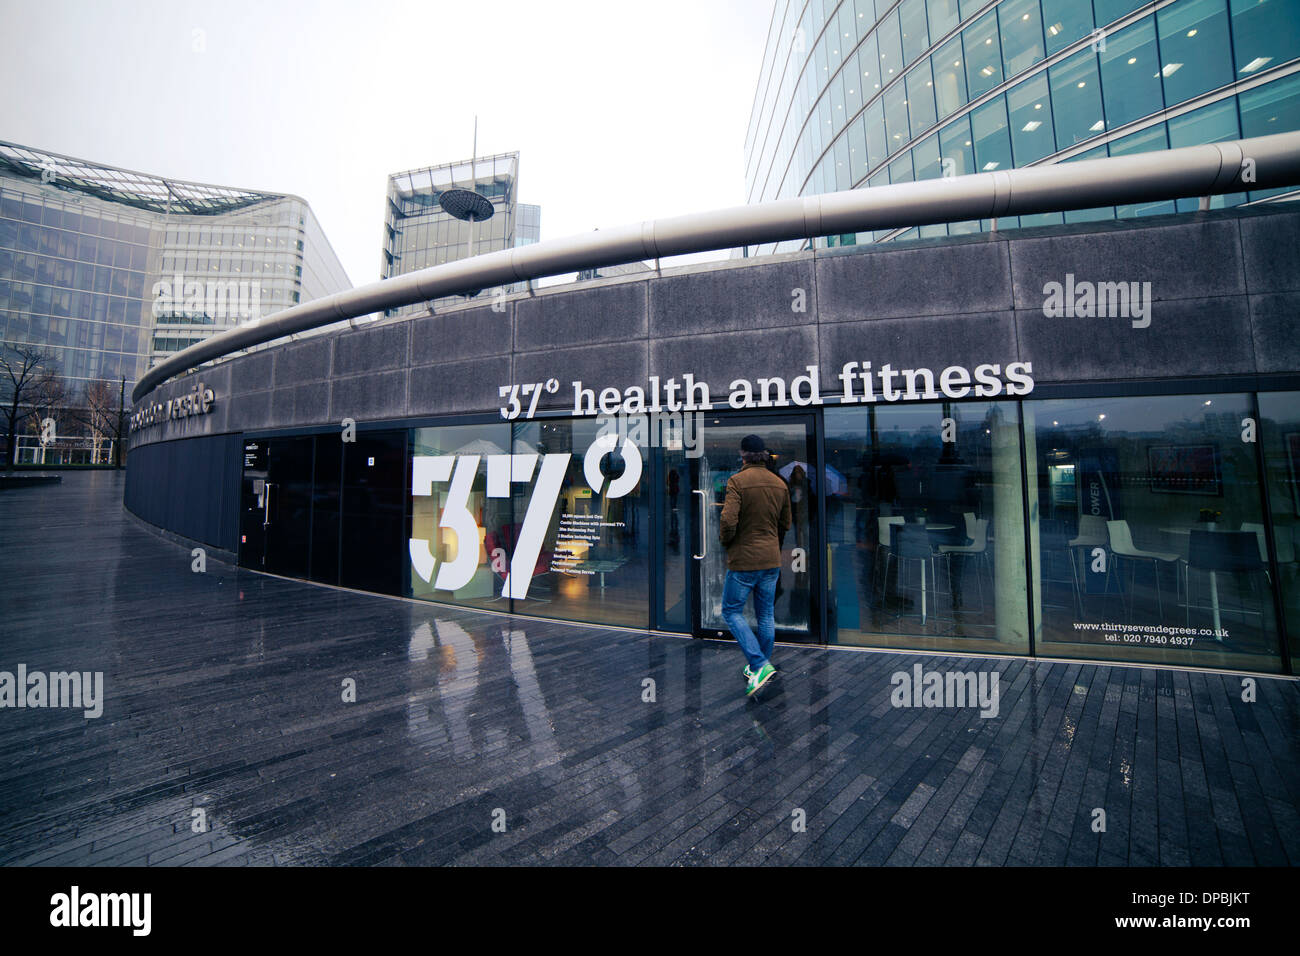 37 health and fitness center in London, UK. Man walking outside - Stock Image